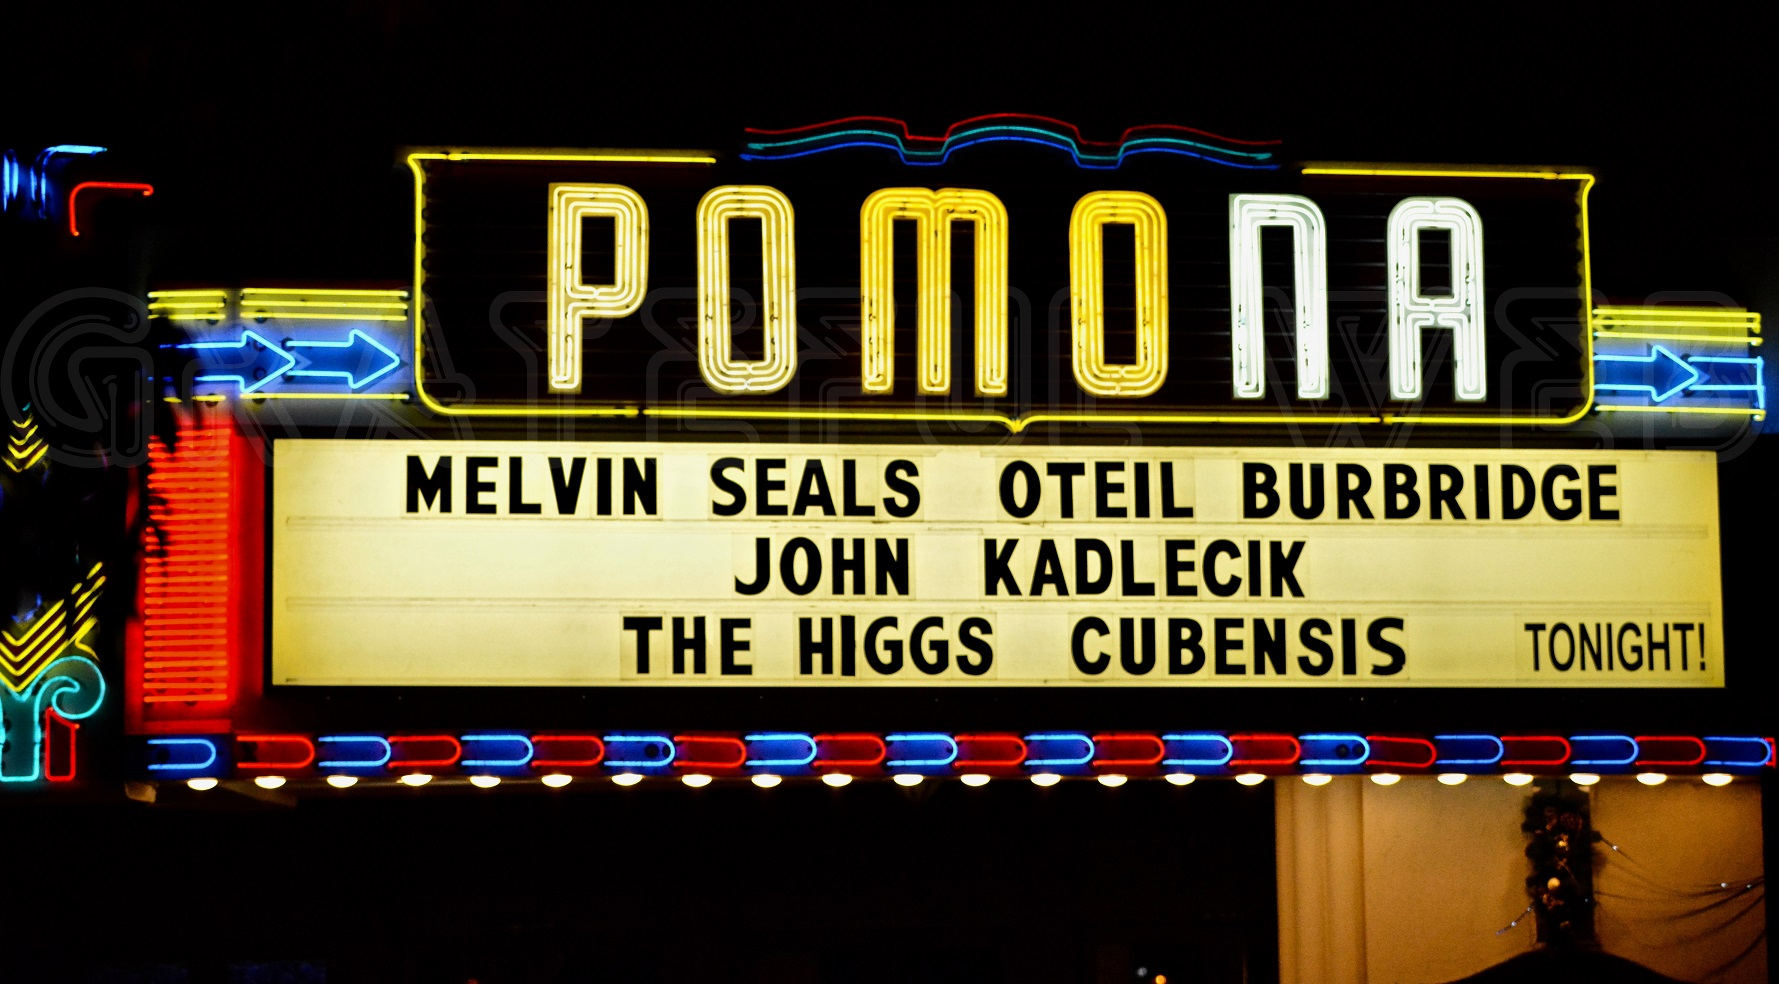 The Fox Theater -- Pomona, California